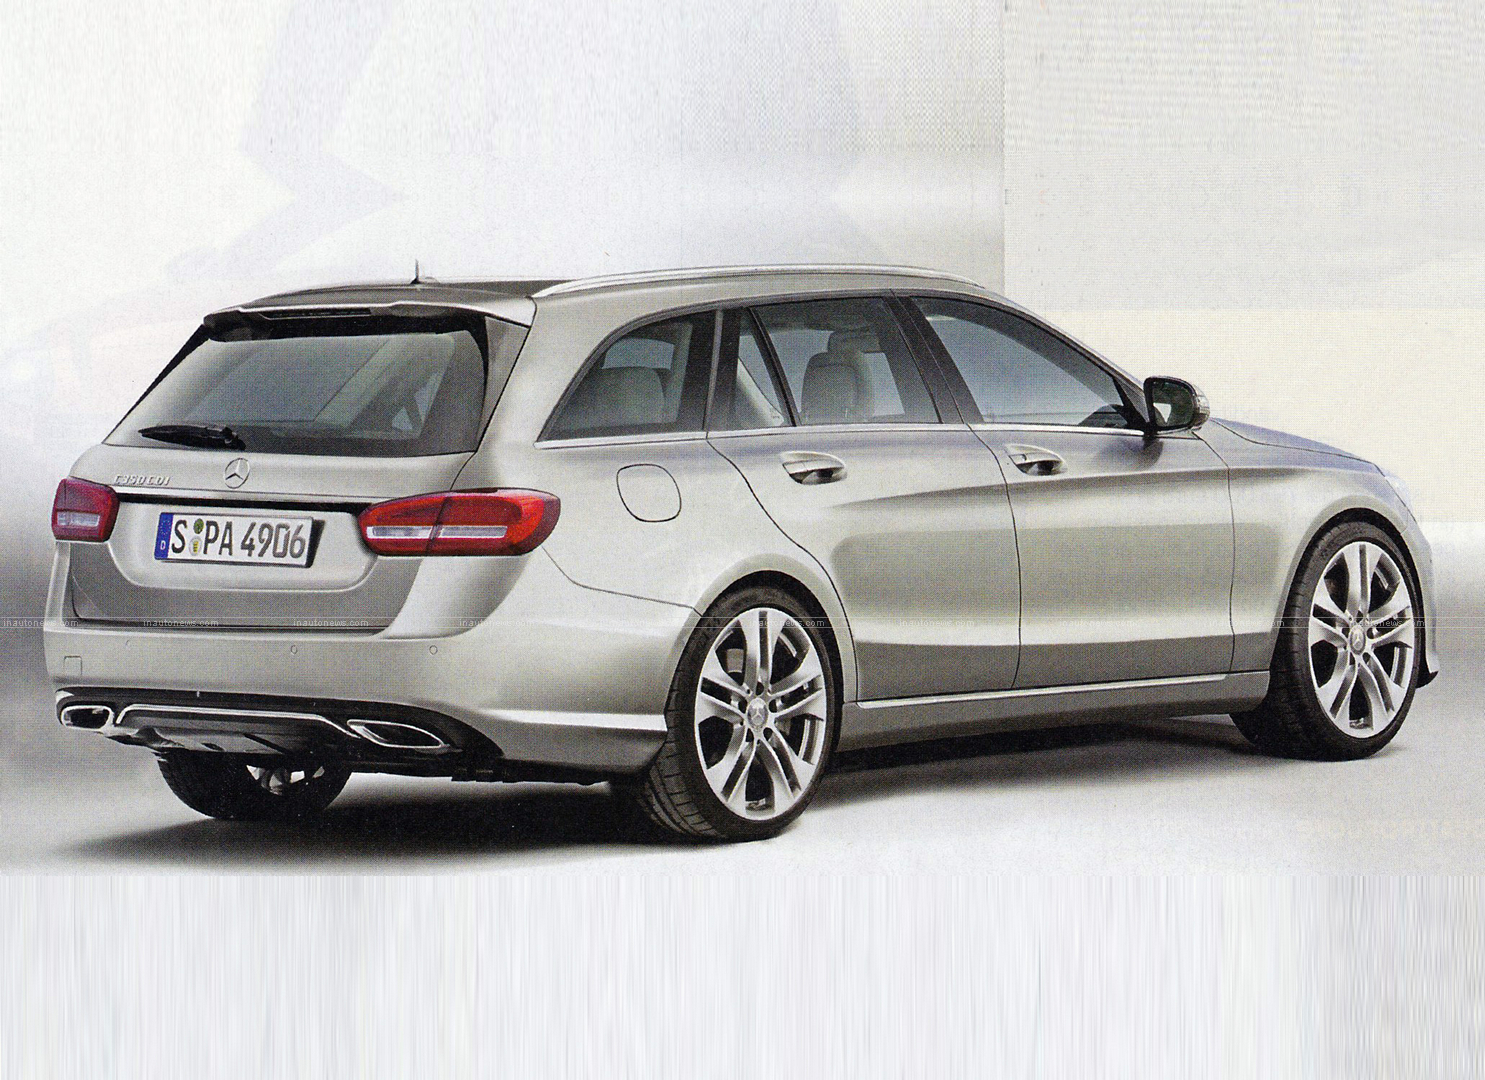 2015-c-class-wagon-s205-rendered-as-real